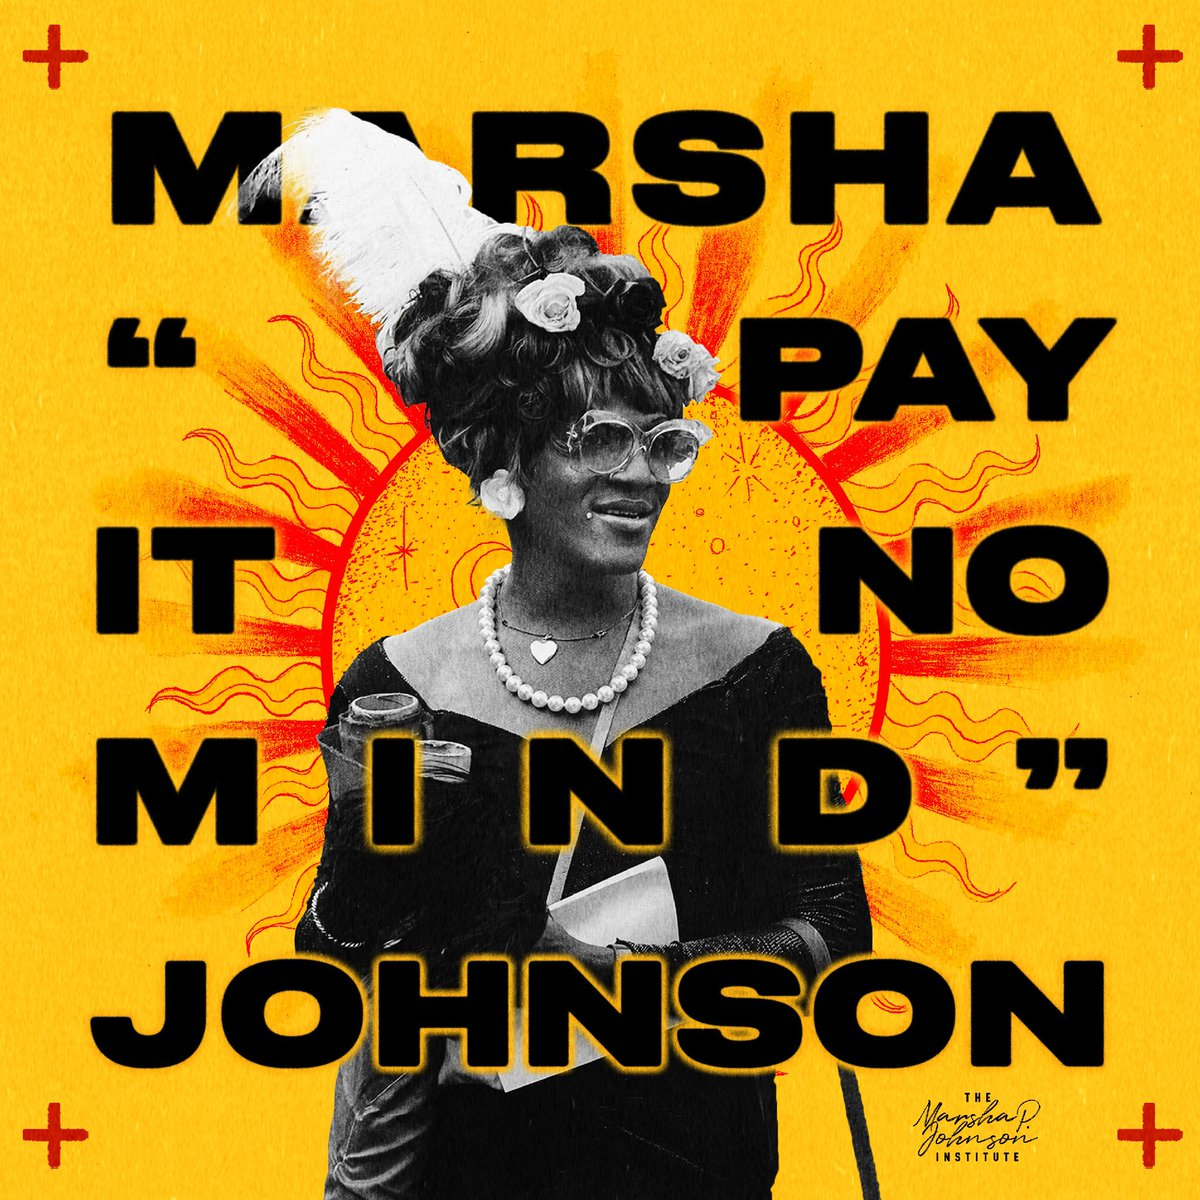 Marsha P. Johnson was a fearless leader in the Black transgender community. The @mpjinstitute honors her legacy by continuing her fight to protect and defend the human rights of Black trans people. Swipe through to learn more, or visit .